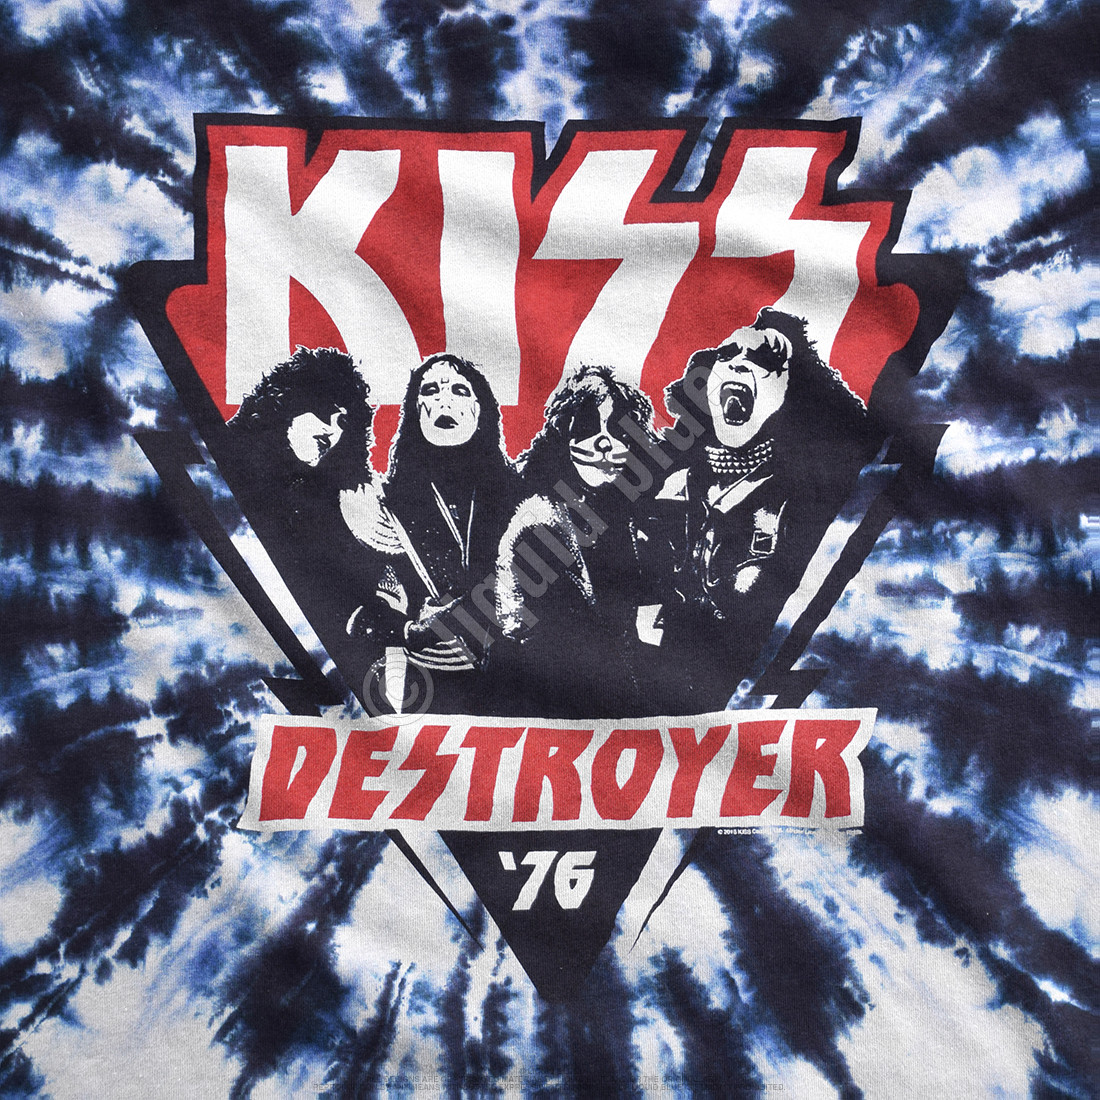 KISS Destroyer '76 Tie-Dye T-Shirt